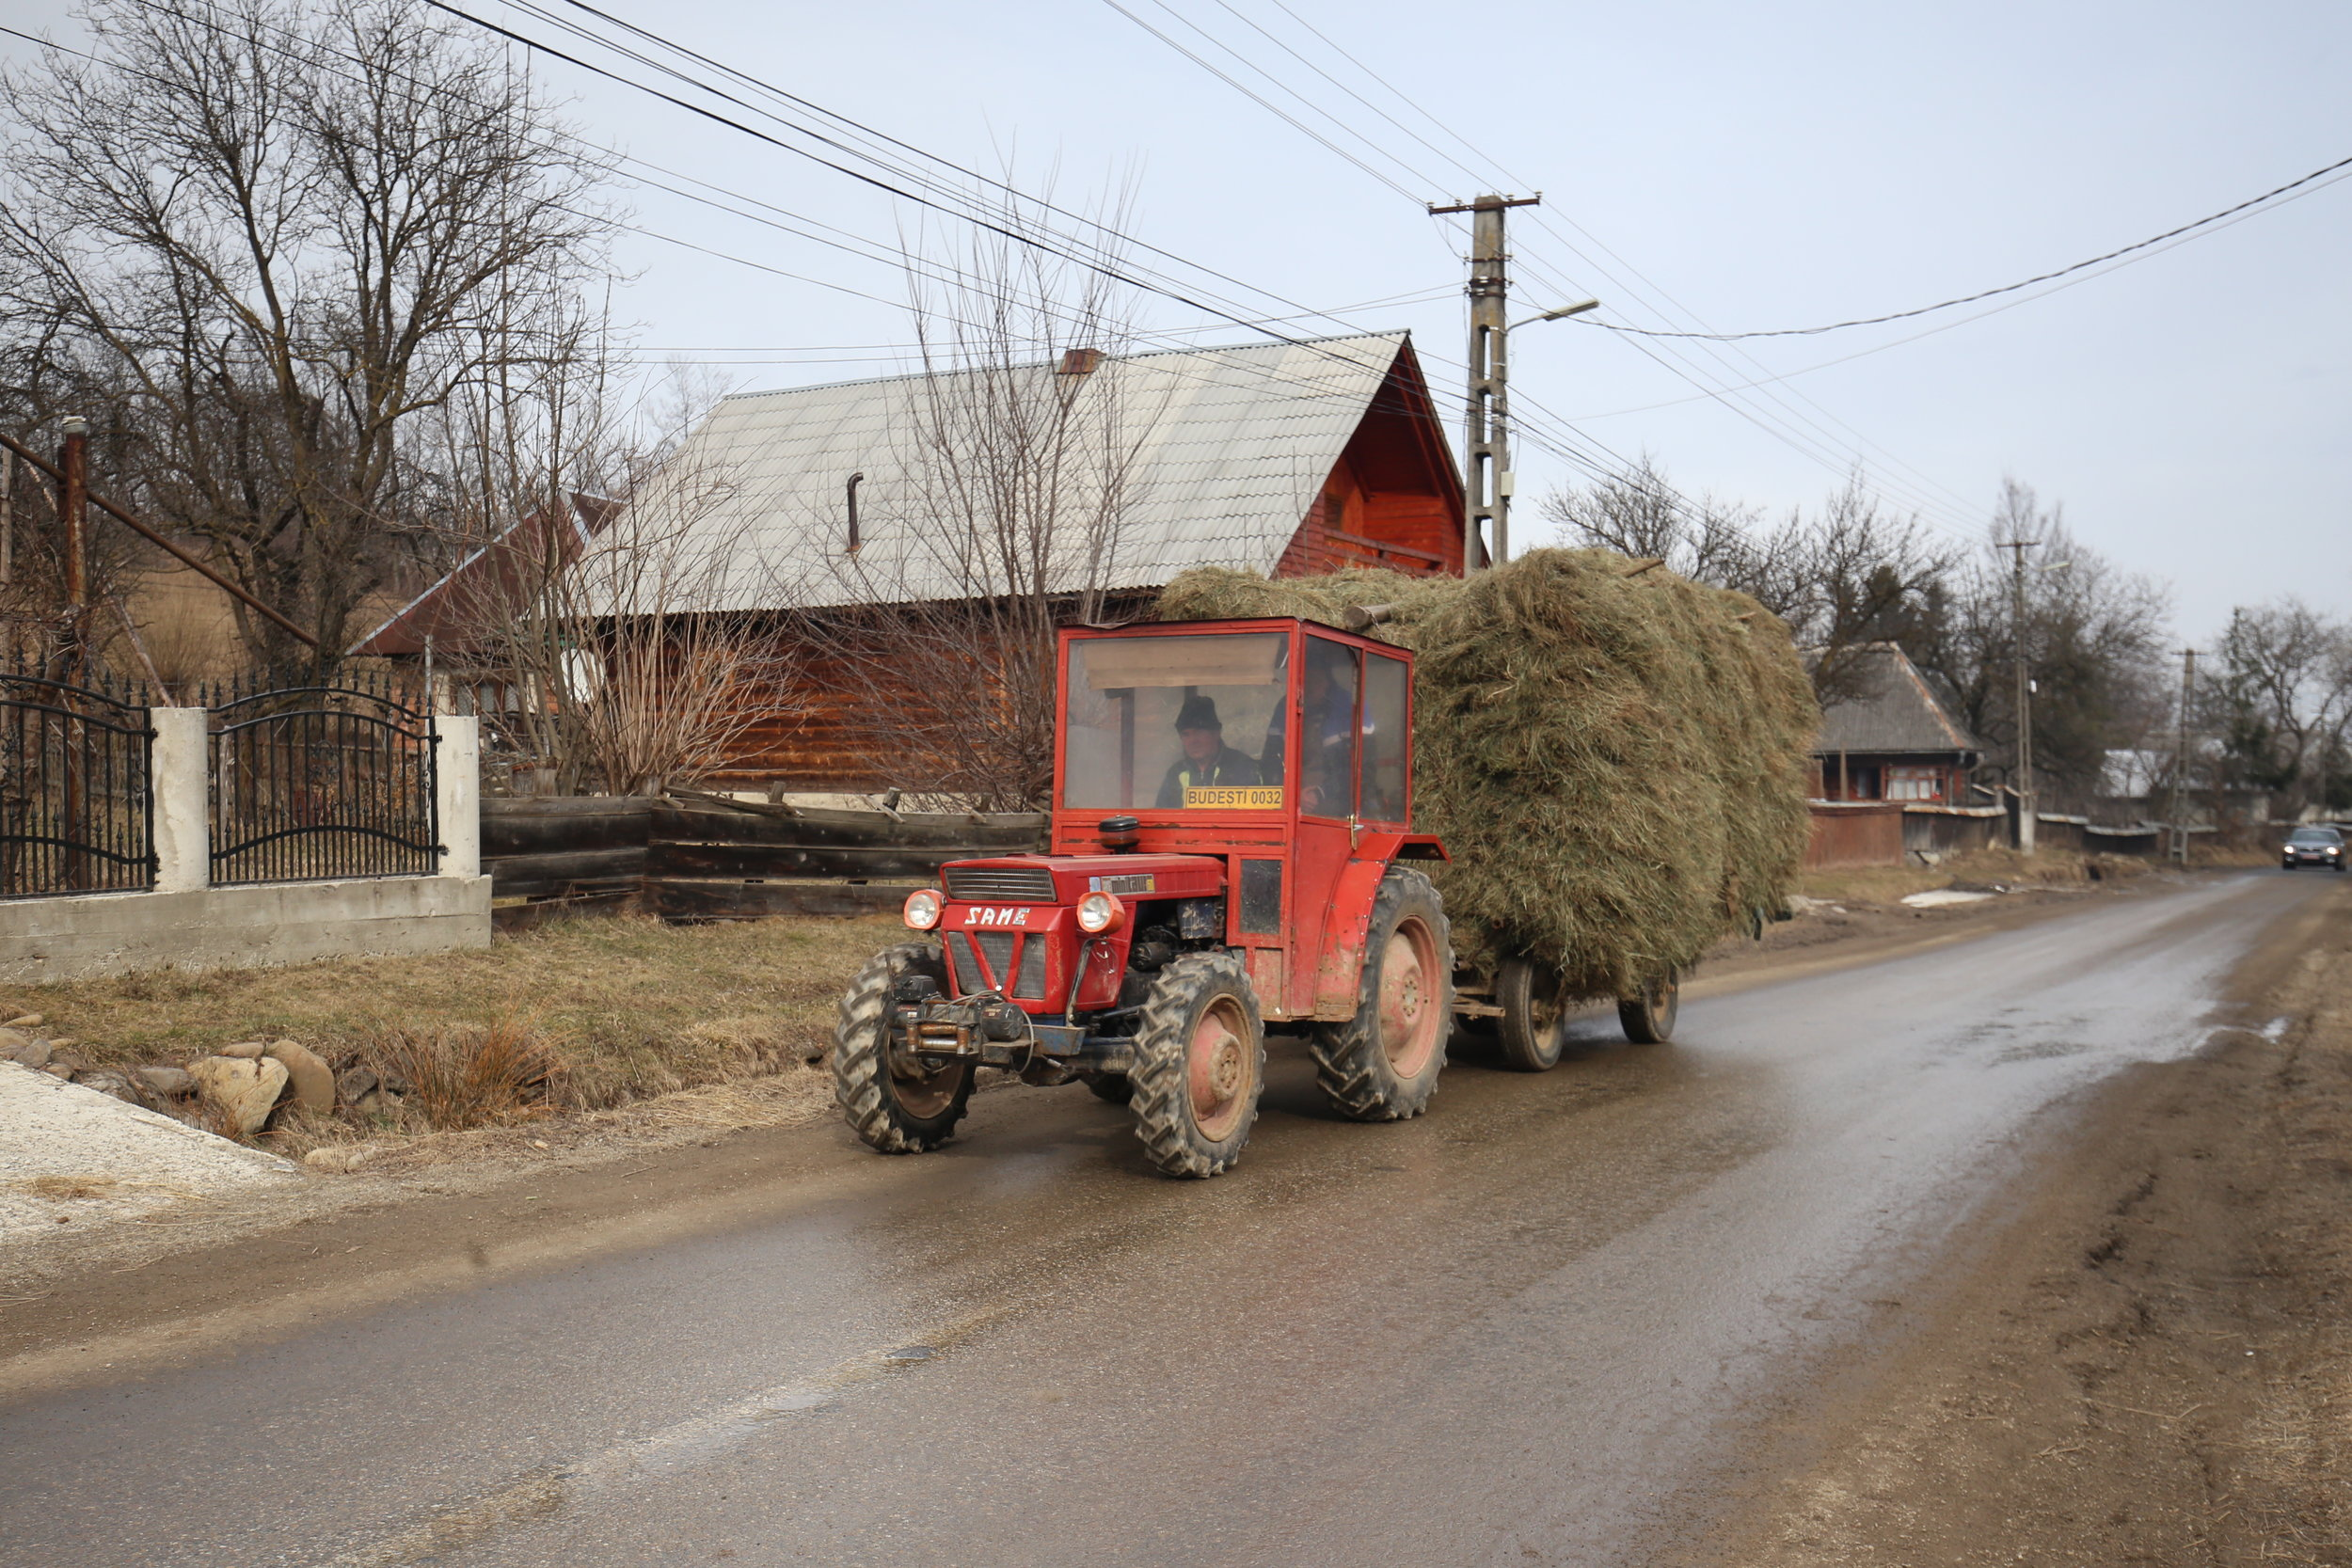 Tractor carrying a huge stack of hay through a small Romanian village.